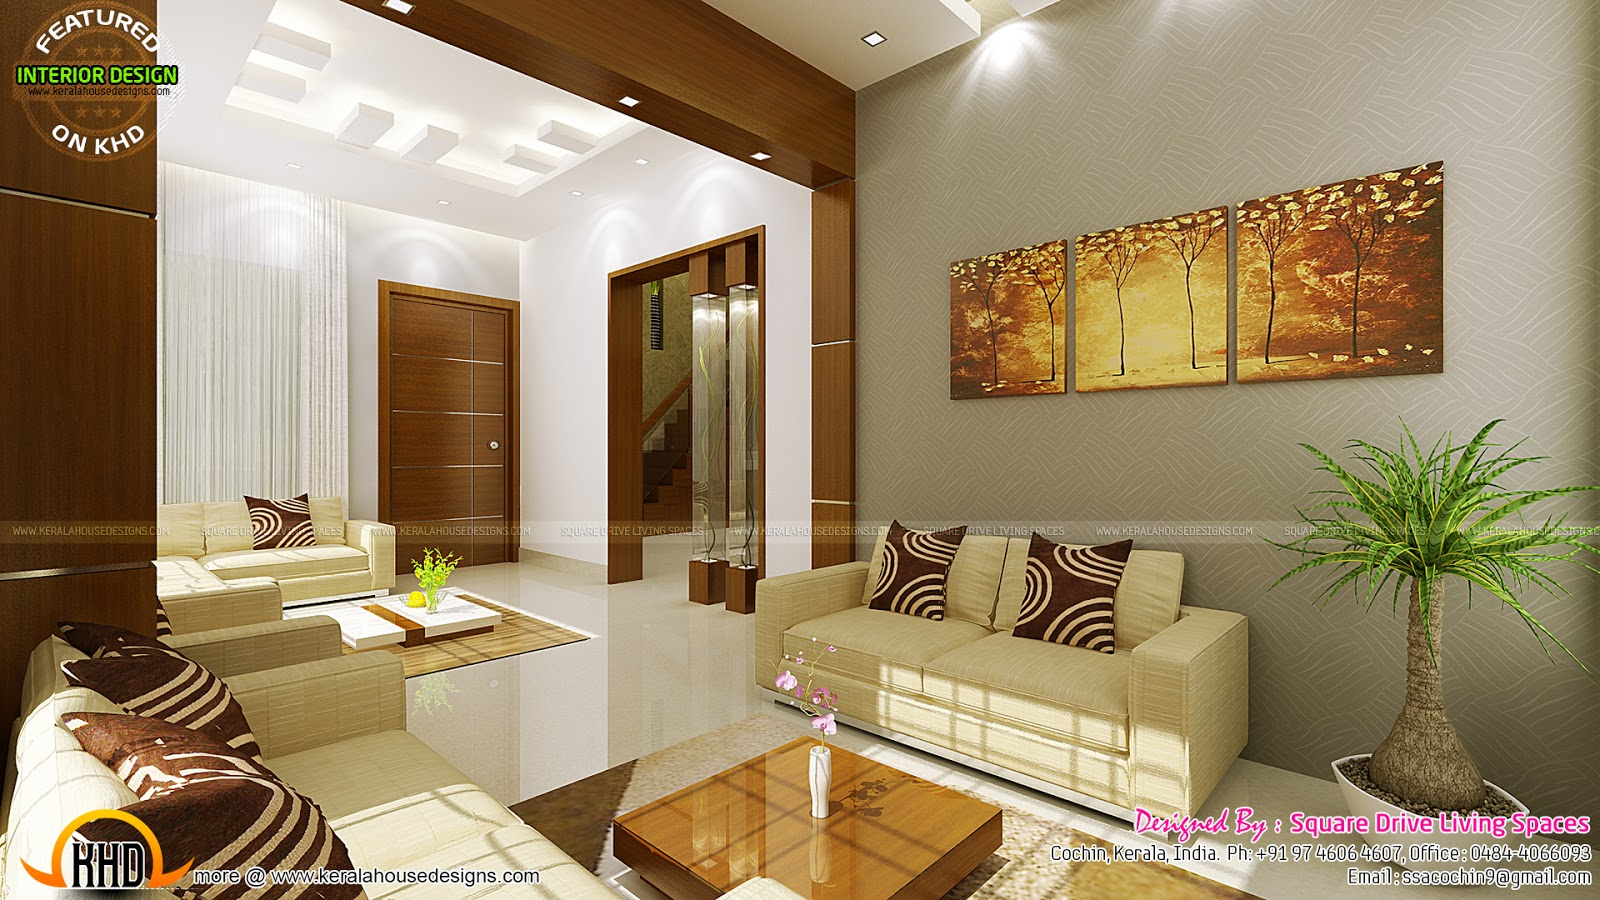 Contemporary kitchen dining and living room kerala home design and floor plans - Home interiors living room ...